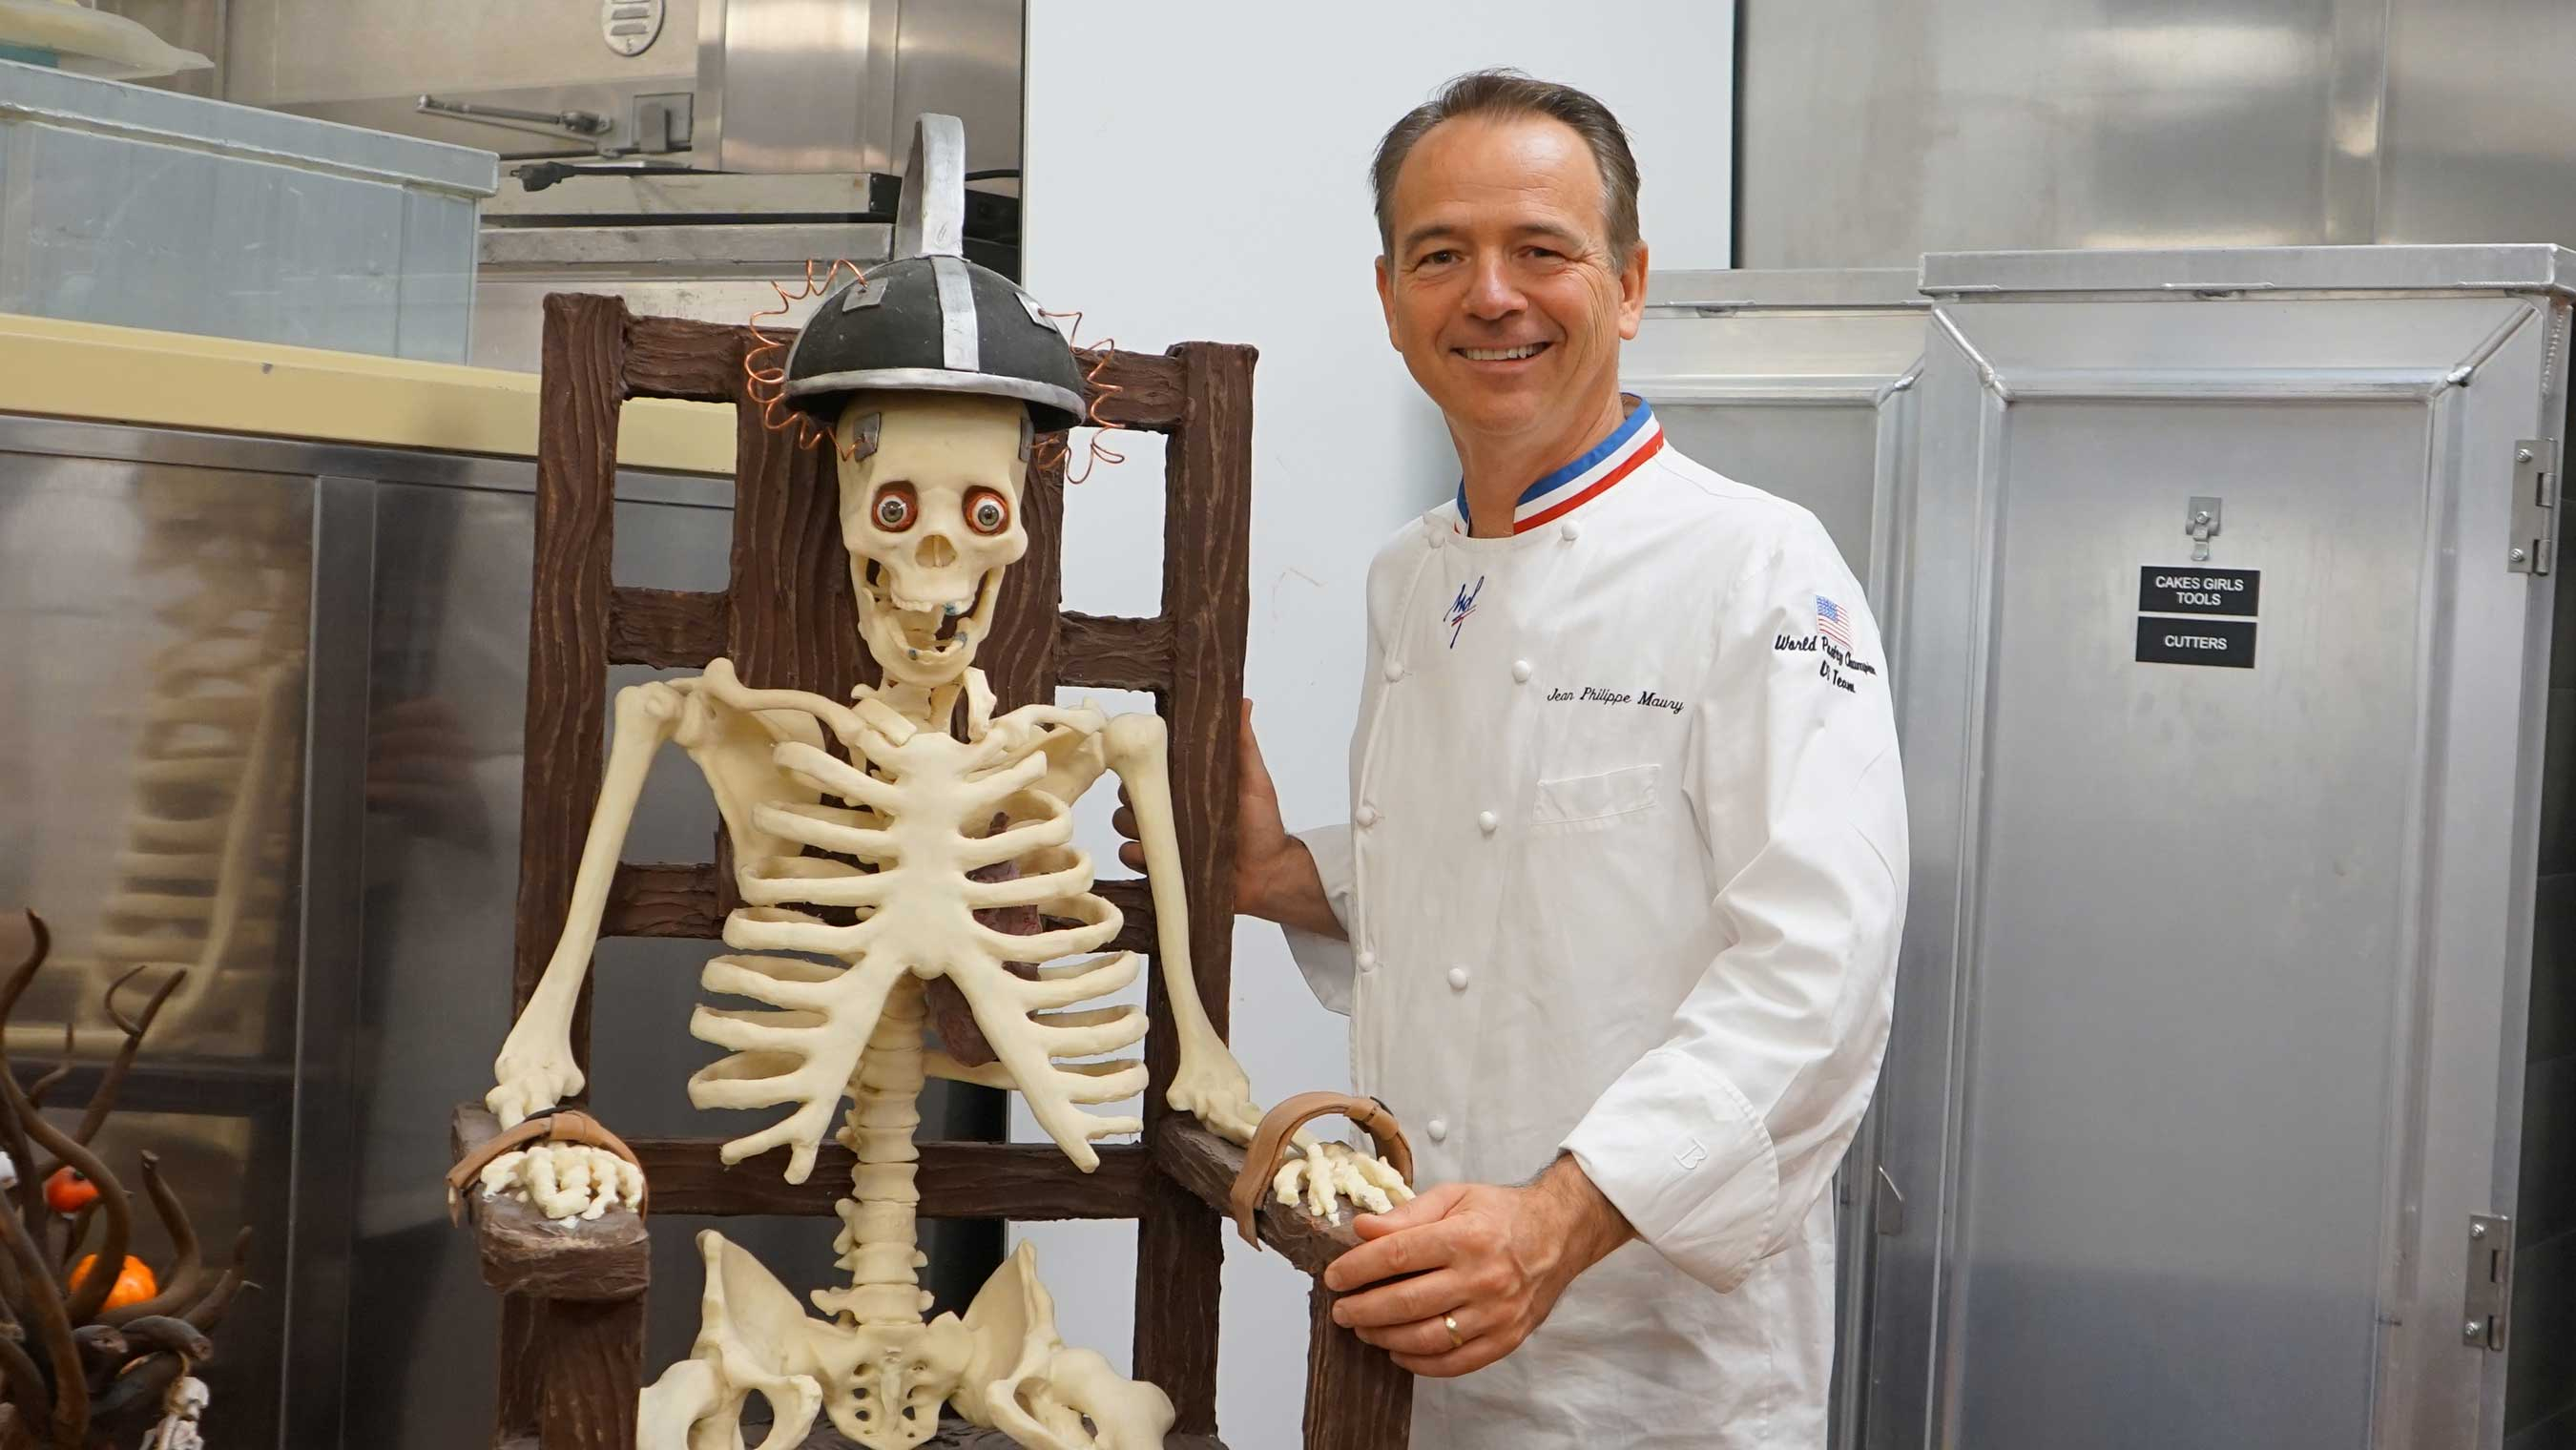 Jean Philippe Maury pictured with life-size skeleton showpiece made from 130 pounds of white and dark chocolate